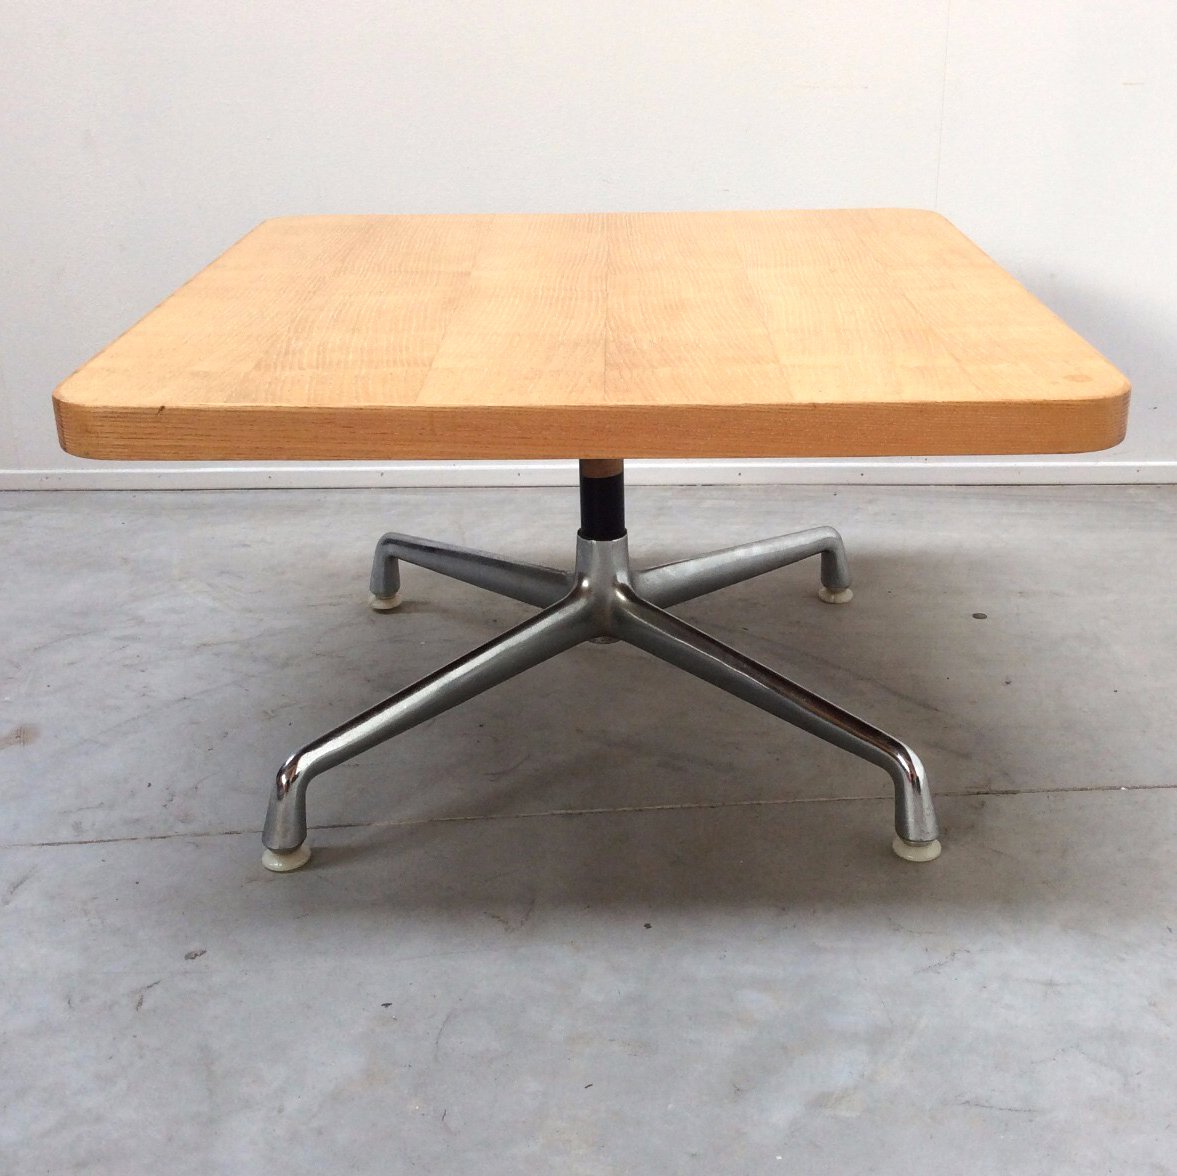 table basse vintage par charles eames pour herman miller etats unis 1960s en vente sur pamono. Black Bedroom Furniture Sets. Home Design Ideas